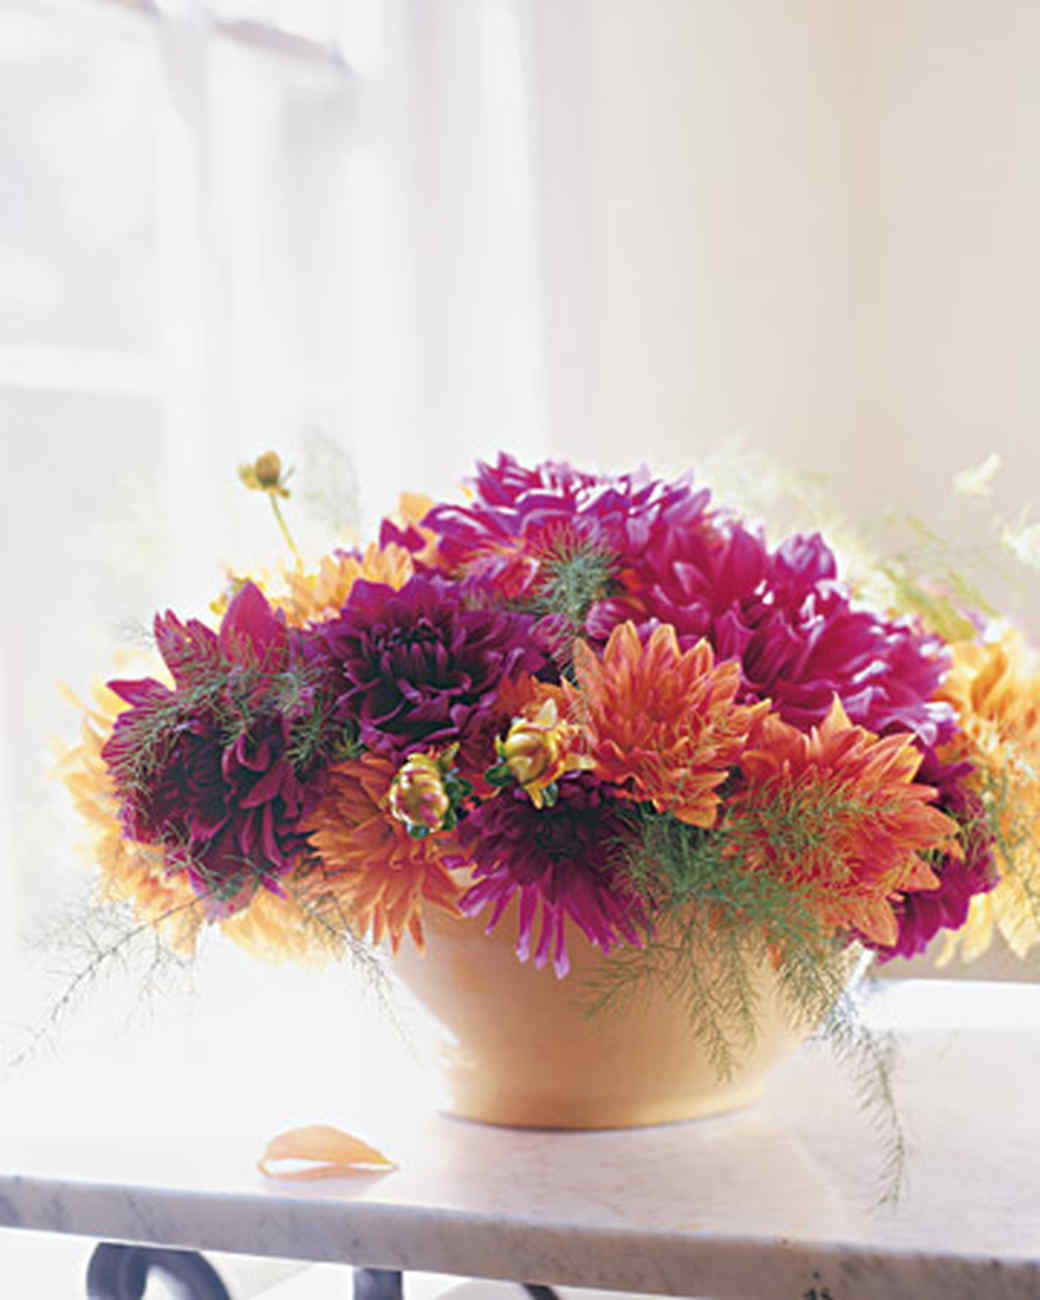 Stay In the Vase Cemetery Flowers Of Marthas Flower Arranging Secrets Martha Stewart In Mla101098 0605 Pink Dahlia Xl